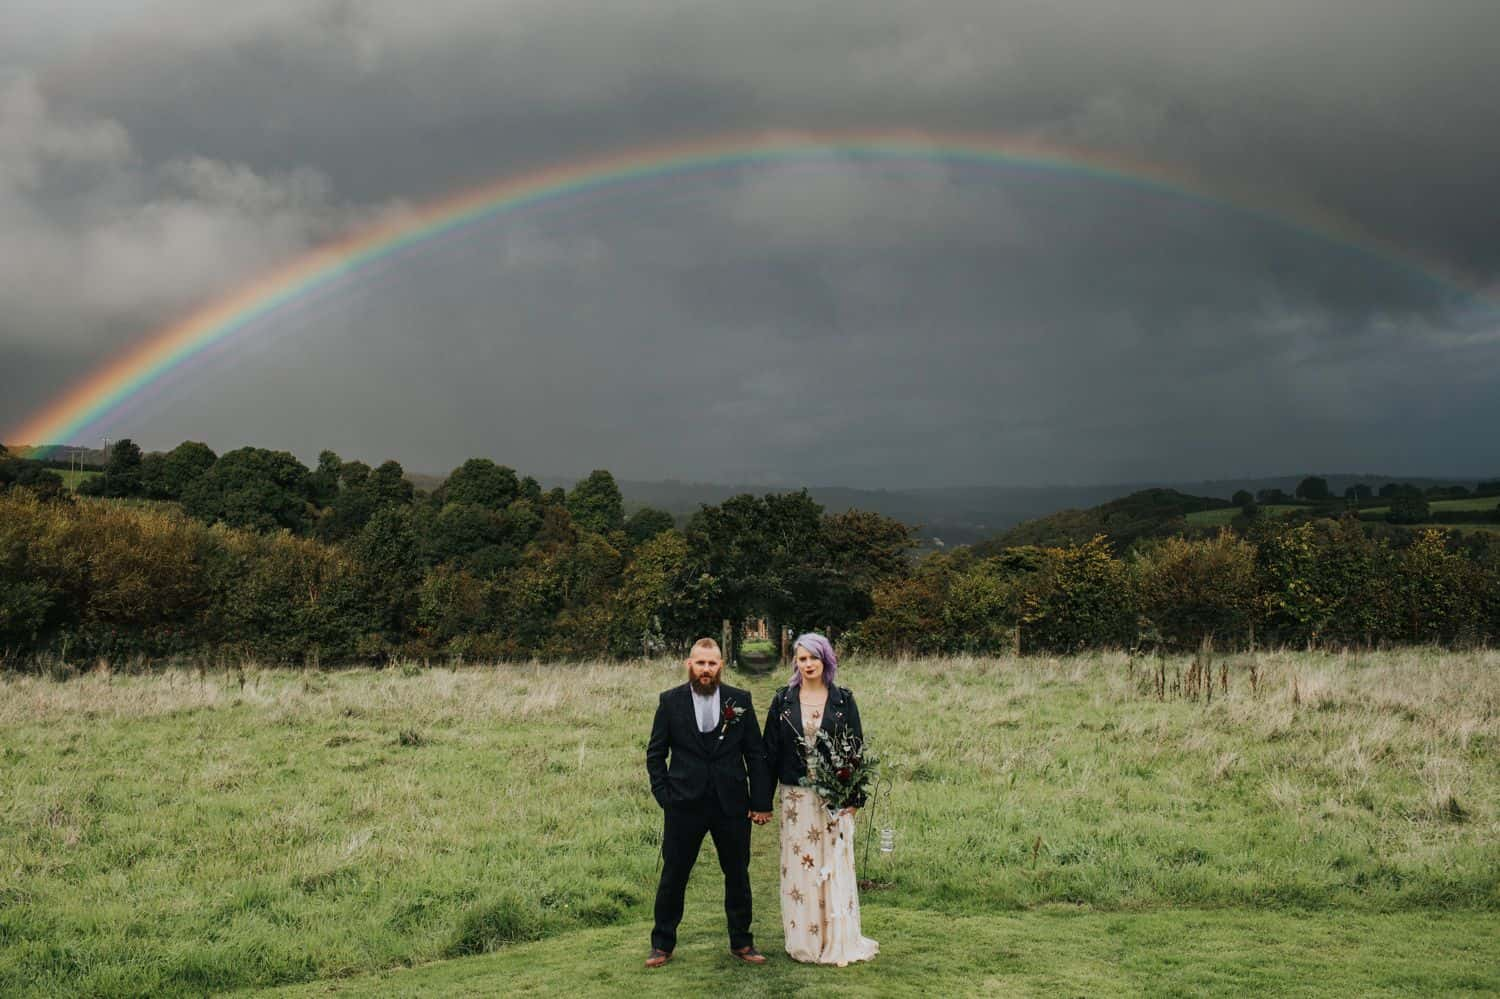 How To Make A Photography Website Your Dream Clients Can't Resist: A punk-rock bride and groom stand in a field below a rainbow glowing through ominous clouds.